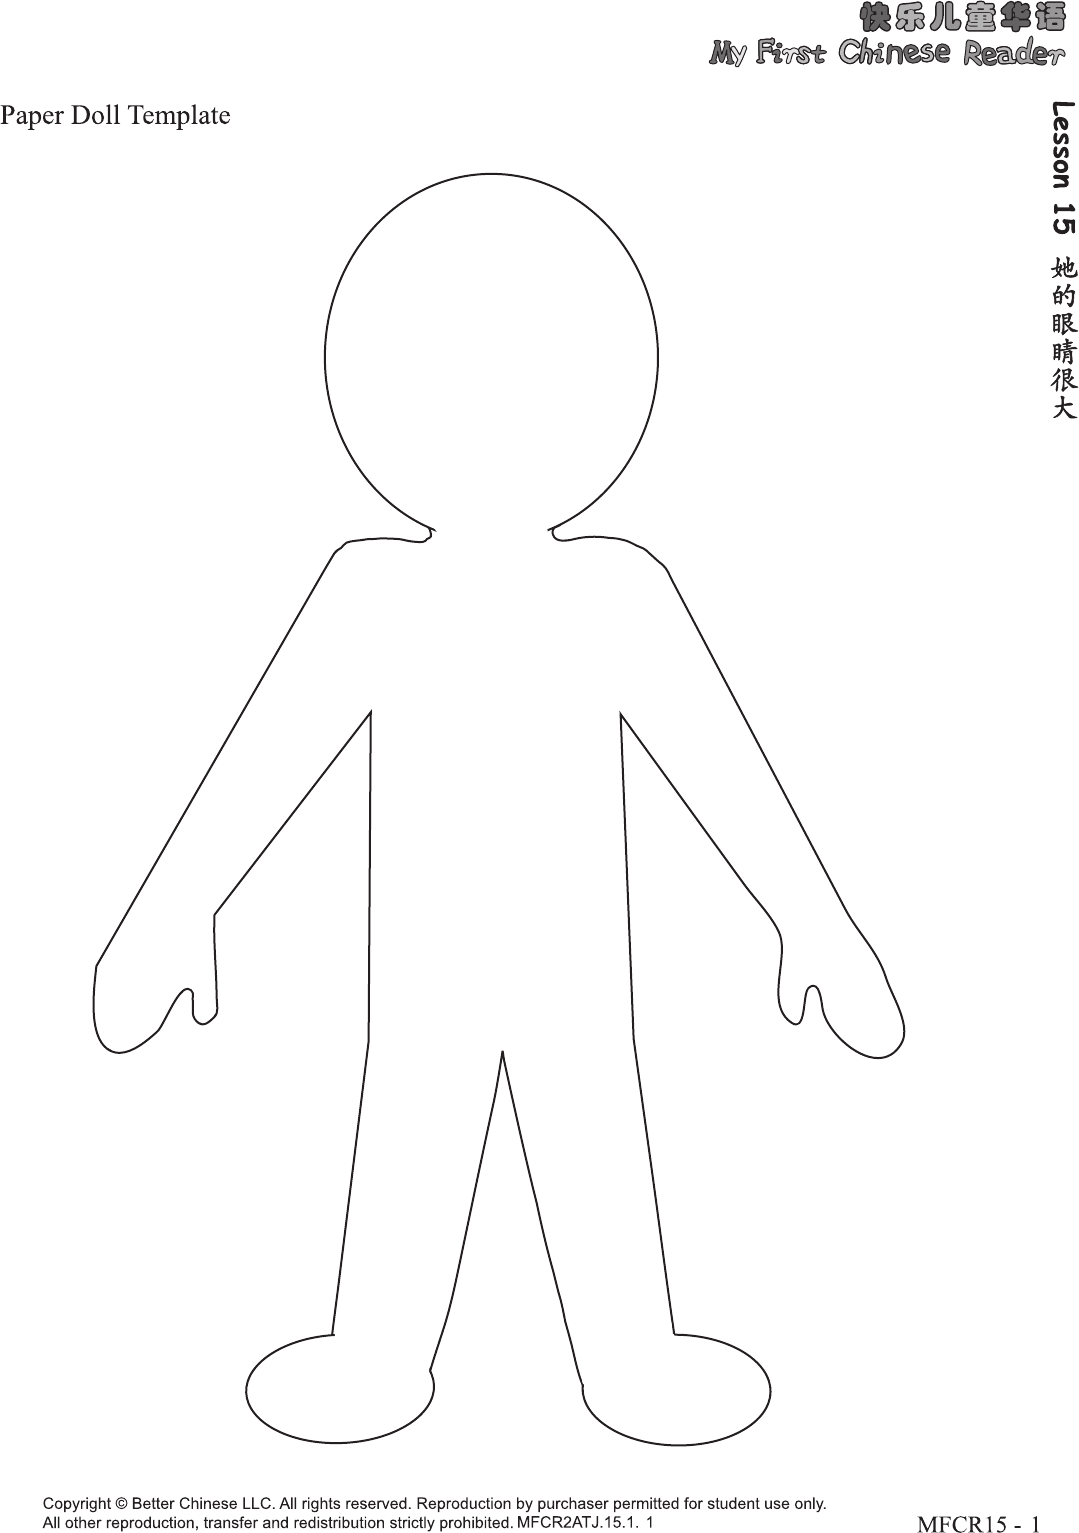 Free Paper Doll Template Pdf 575kb 1 Page S